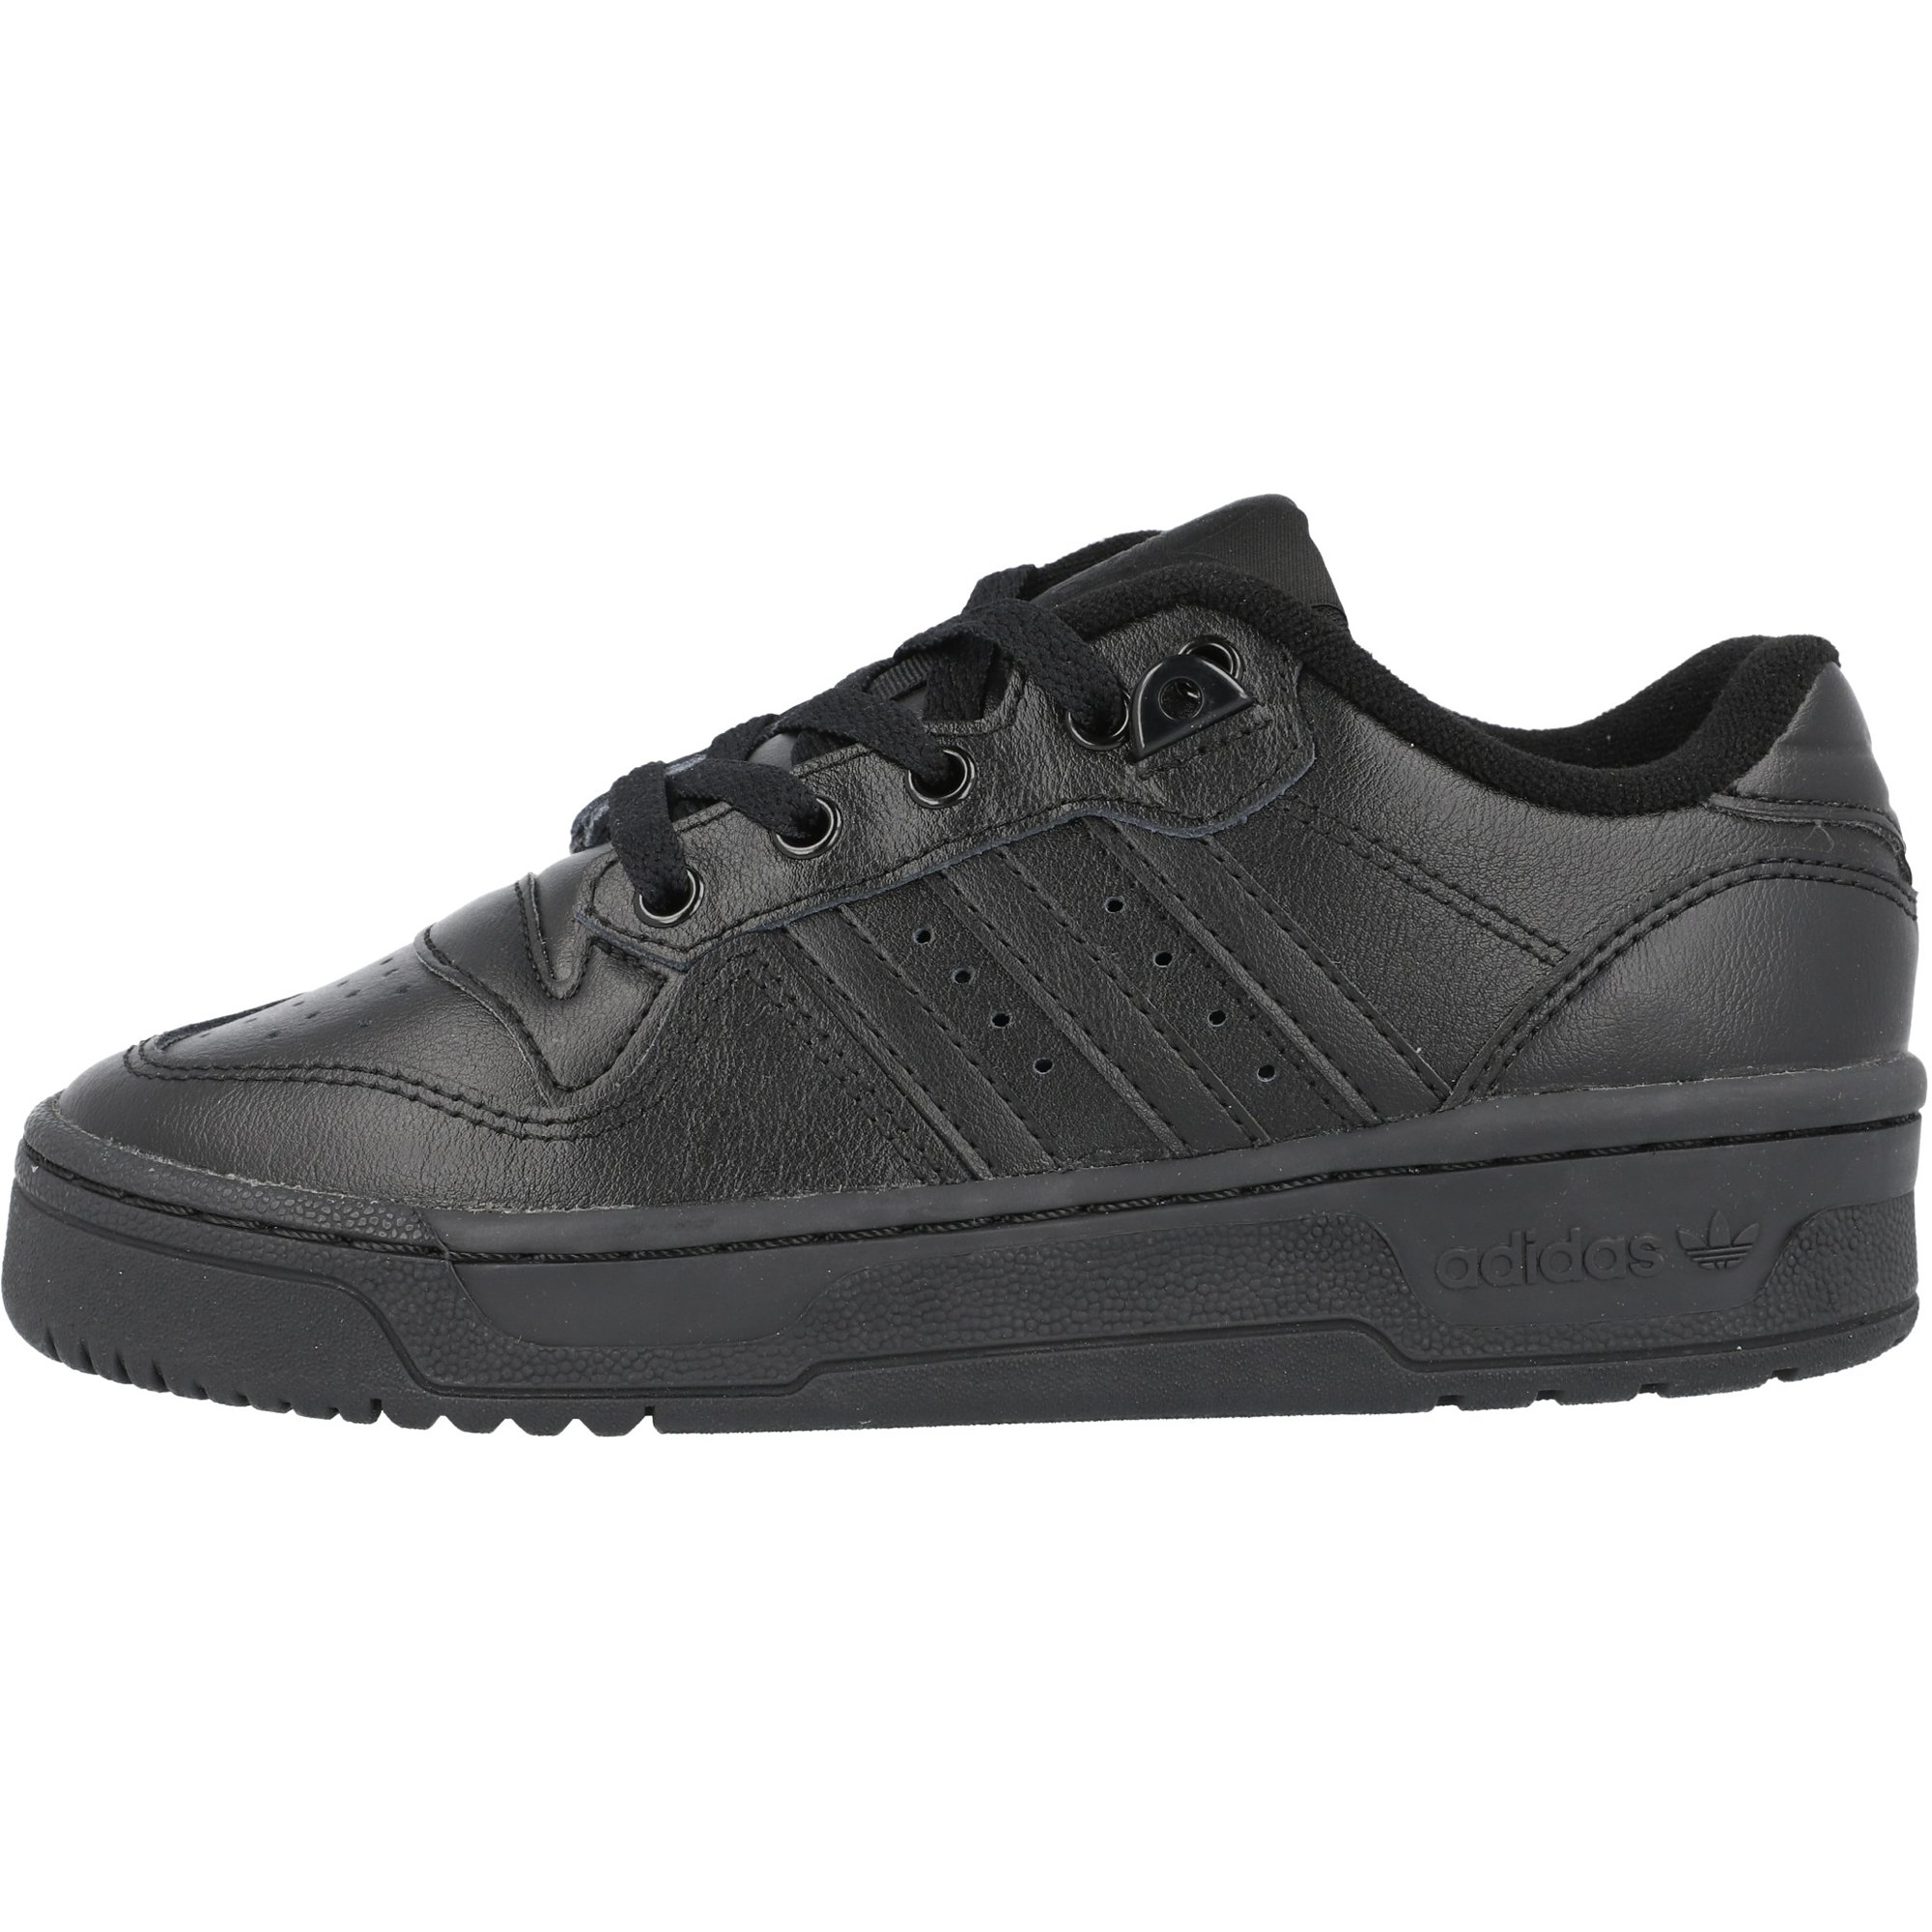 adidas Originals Rivalry Low J Black Leather